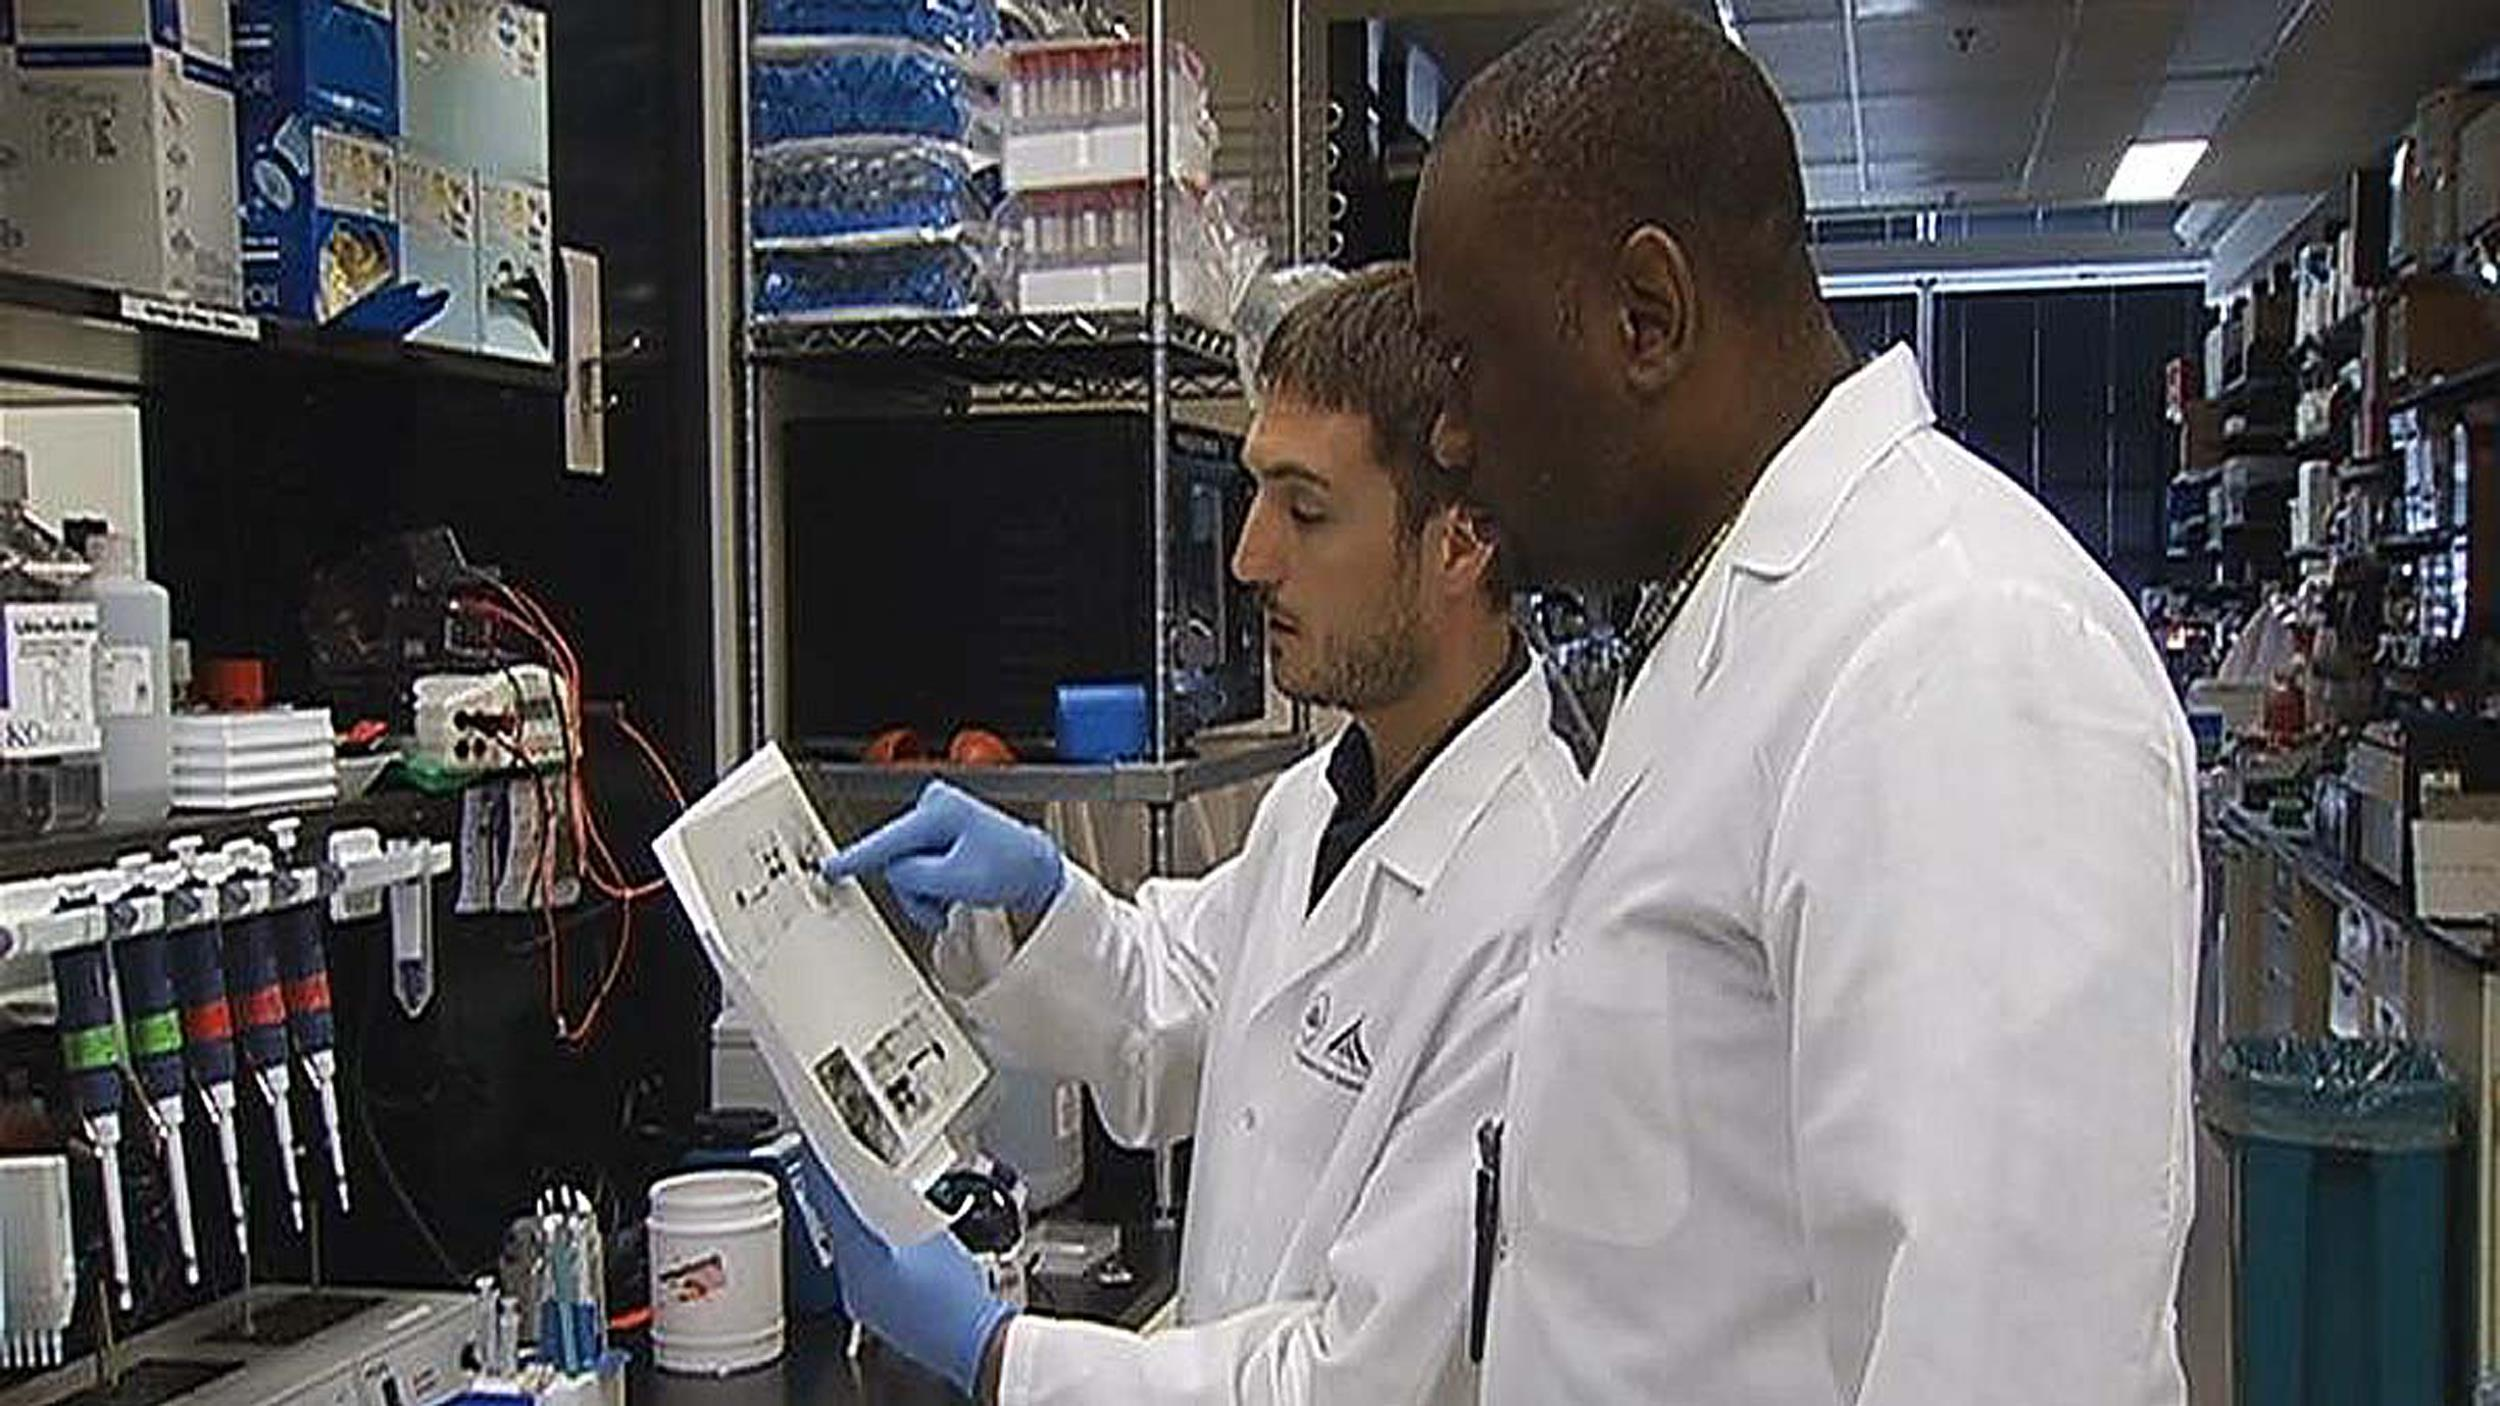 Image: Scientists at work on an Ebola vaccine at an NIH lab.